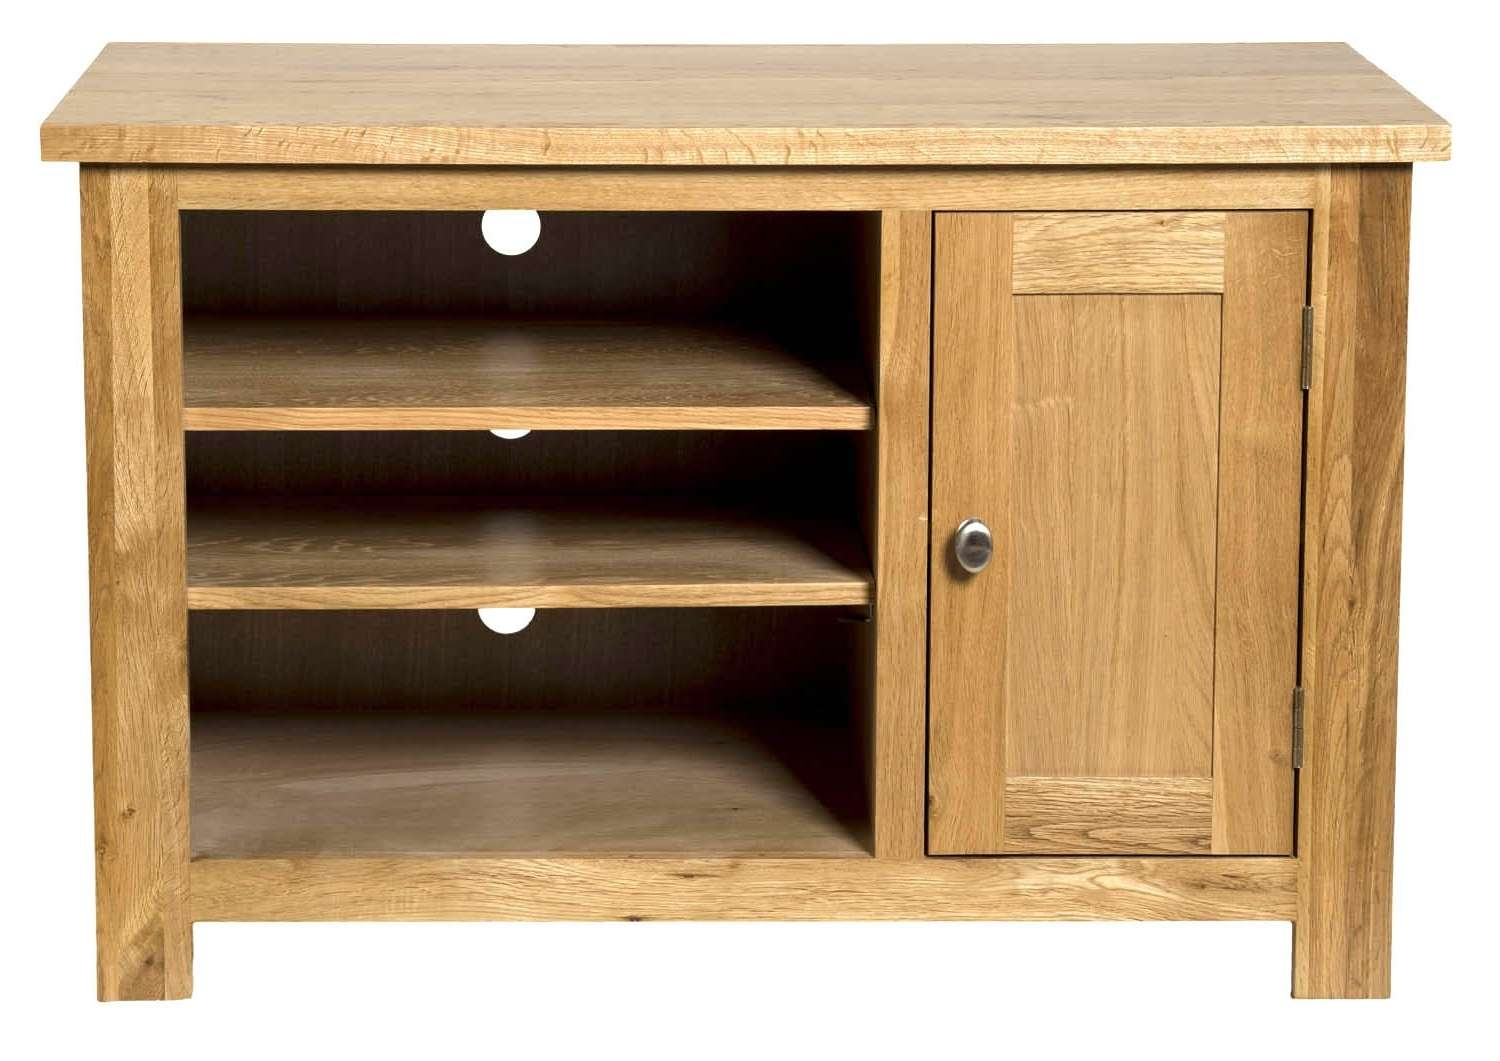 Waverly Oak Small Compact Tv Stand With Cabinet Storage | Hallowood In Small Oak Tv Cabinets (View 19 of 20)